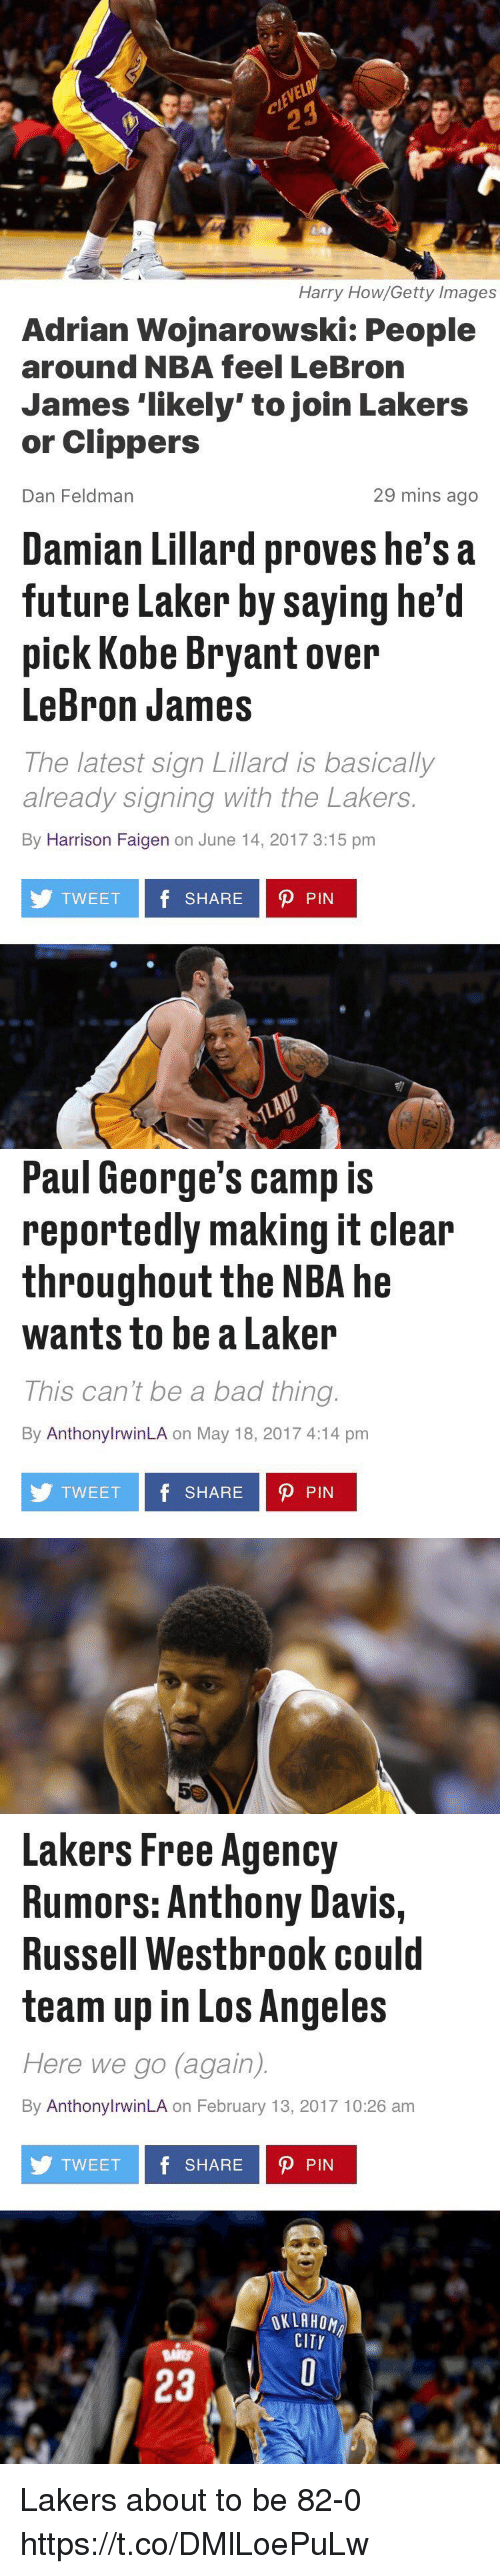 """Bad, Blackpeopletwitter, and Future: Harry How/Getty Images  Adrian Wojnarowski: People  around NBA feel LeBron  James """"likely"""" to join Lakers  or Clippers  29 mins ago  Dan Feldman   Damian Lillard proves he's a  future Laker by saying he'd  pick Kobe Bryant over  LeBron James  The latest sign Lillard is basically  already signing with the Lakers  By Harrison Faigen on June 14, 2017 3:15 pm  TWEET  f SHARE D PIN   Paul George's camp is  reportedly making it clear  throughout the NBA he  wants to be a Laker  This can't be a bad thing  By AnthonylrwinLA on May 18, 2017 4:14 pm  TWEET  f SHARE D PIN   Lakers Free Agency  Rumors: Anthony Davis,  Russell Westbrook could  team up in Los Angeles  Here we go again)  By AnthonylrwinLA on February 13, 2017 10:26 am  TWEET  f SHARE D PIN  OKLAHOMA  CITY  23 Lakers about to be 82-0 https://t.co/DMlLoePuLw"""